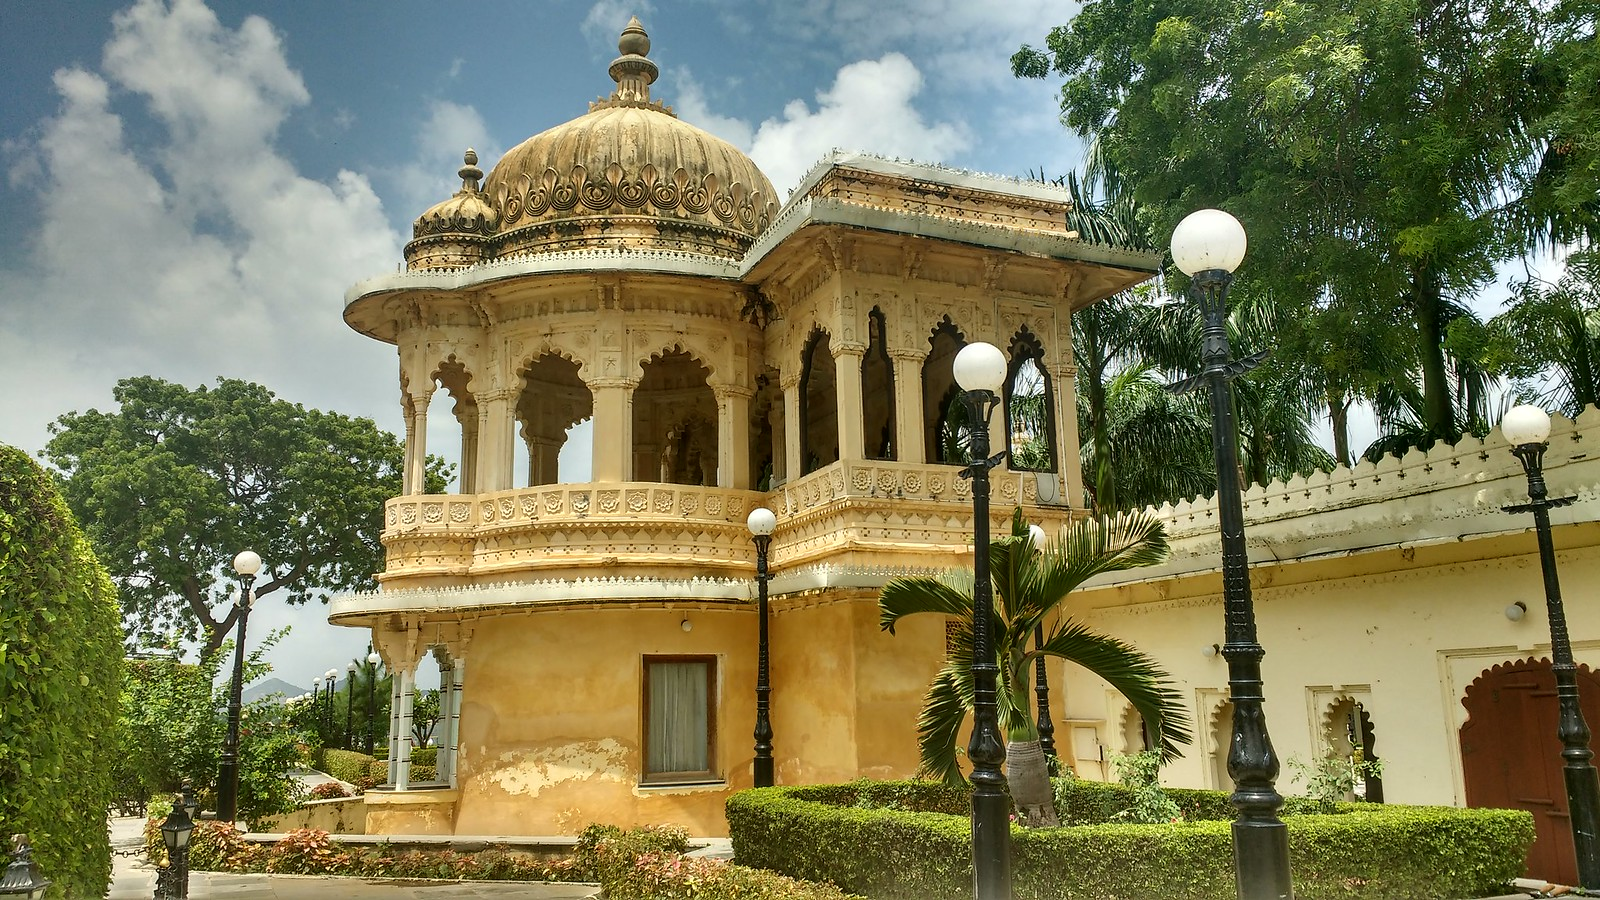 A portion of Jag Niwas Palace